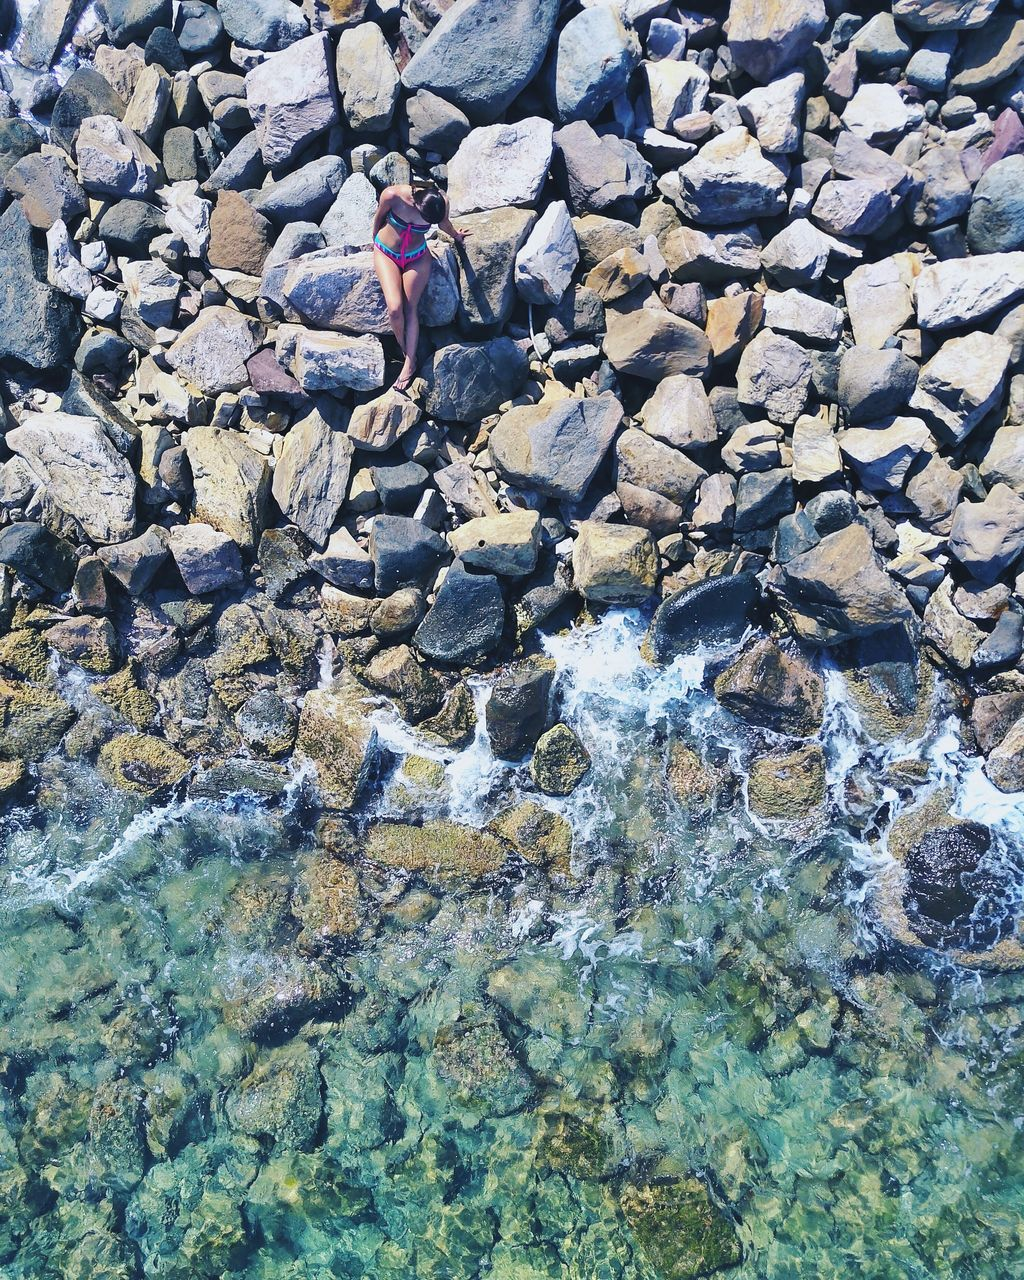 water, rock - object, one person, real people, day, pebble, full length, outdoors, men, waterfront, standing, nature, pebble beach, people